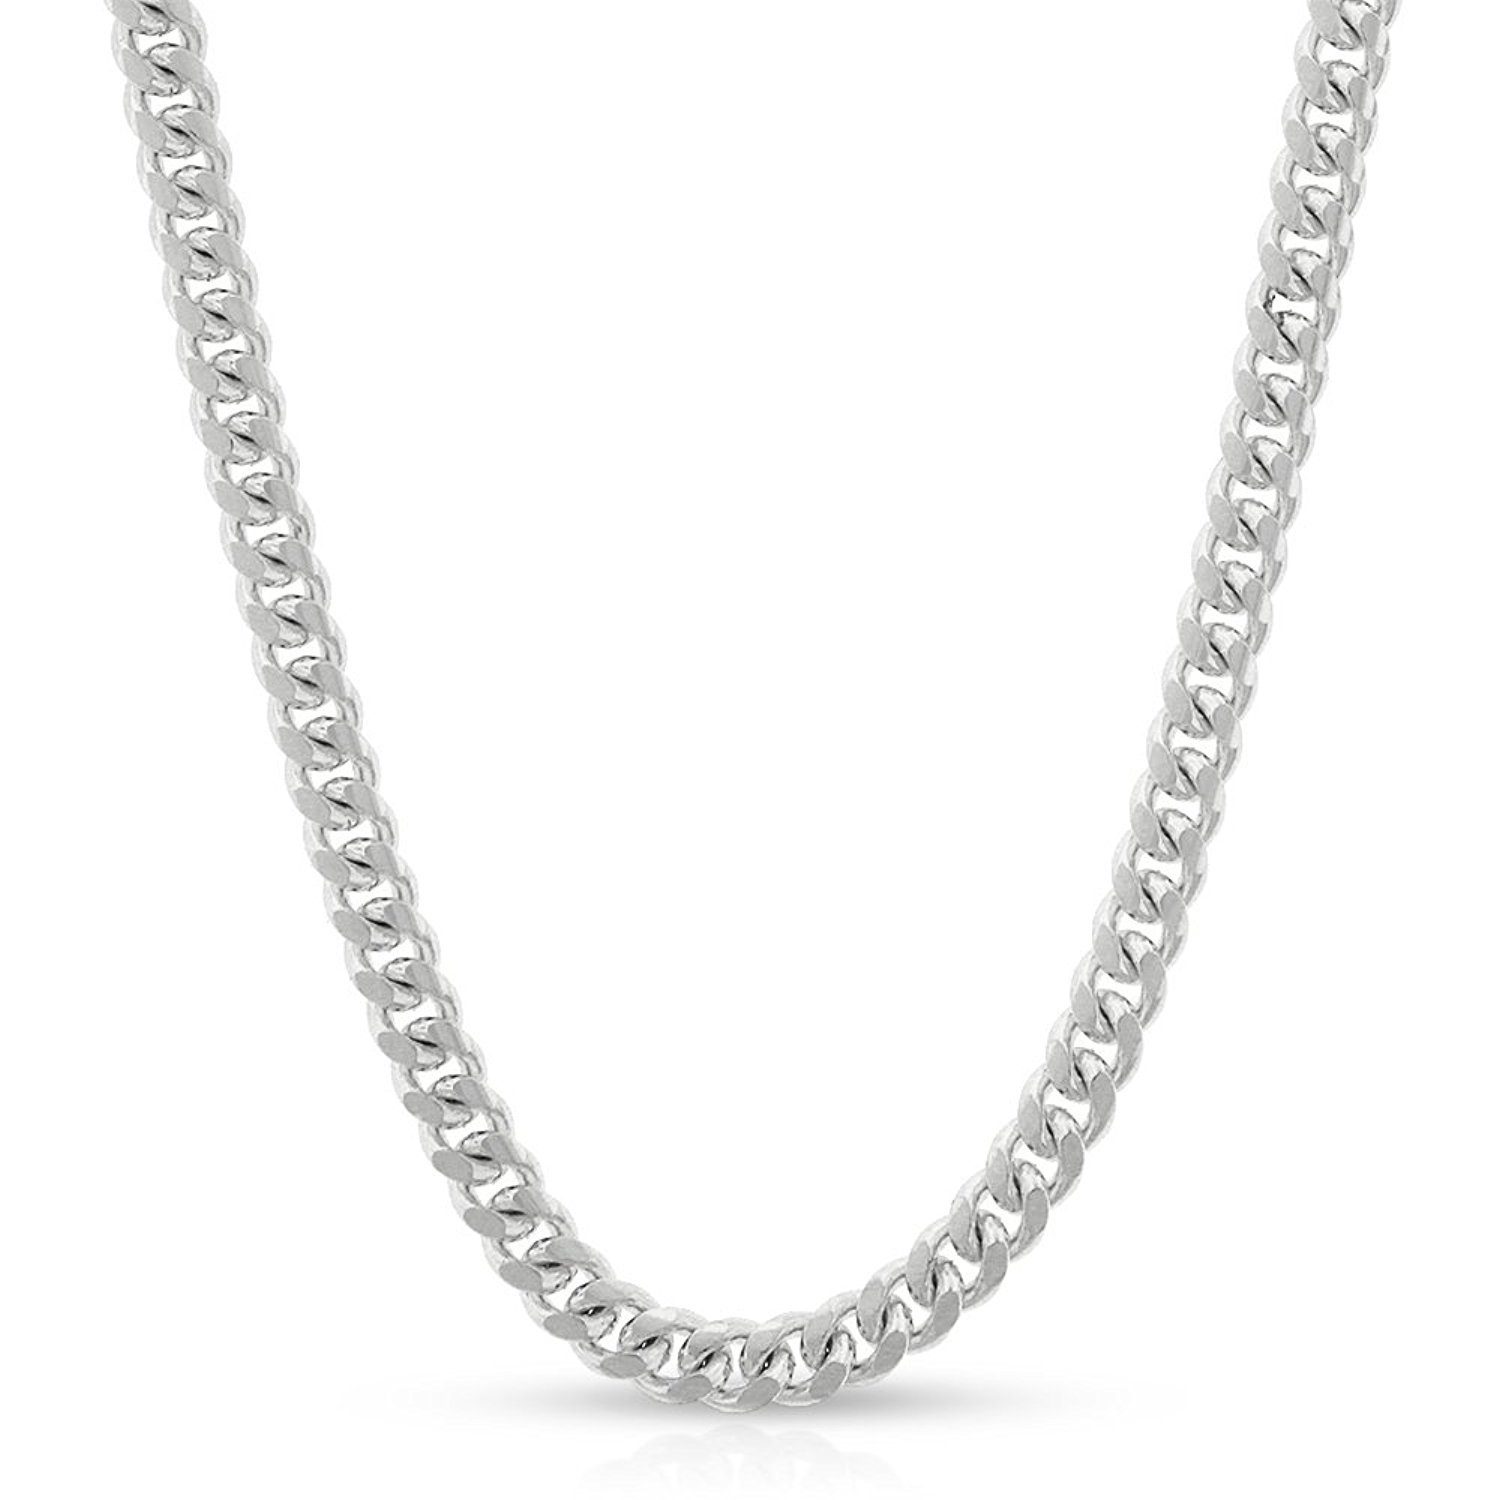 14k White Gold 3.5mm Solid Miami Cuban Curb Link Necklace Chain 16'' - 30'' (24)